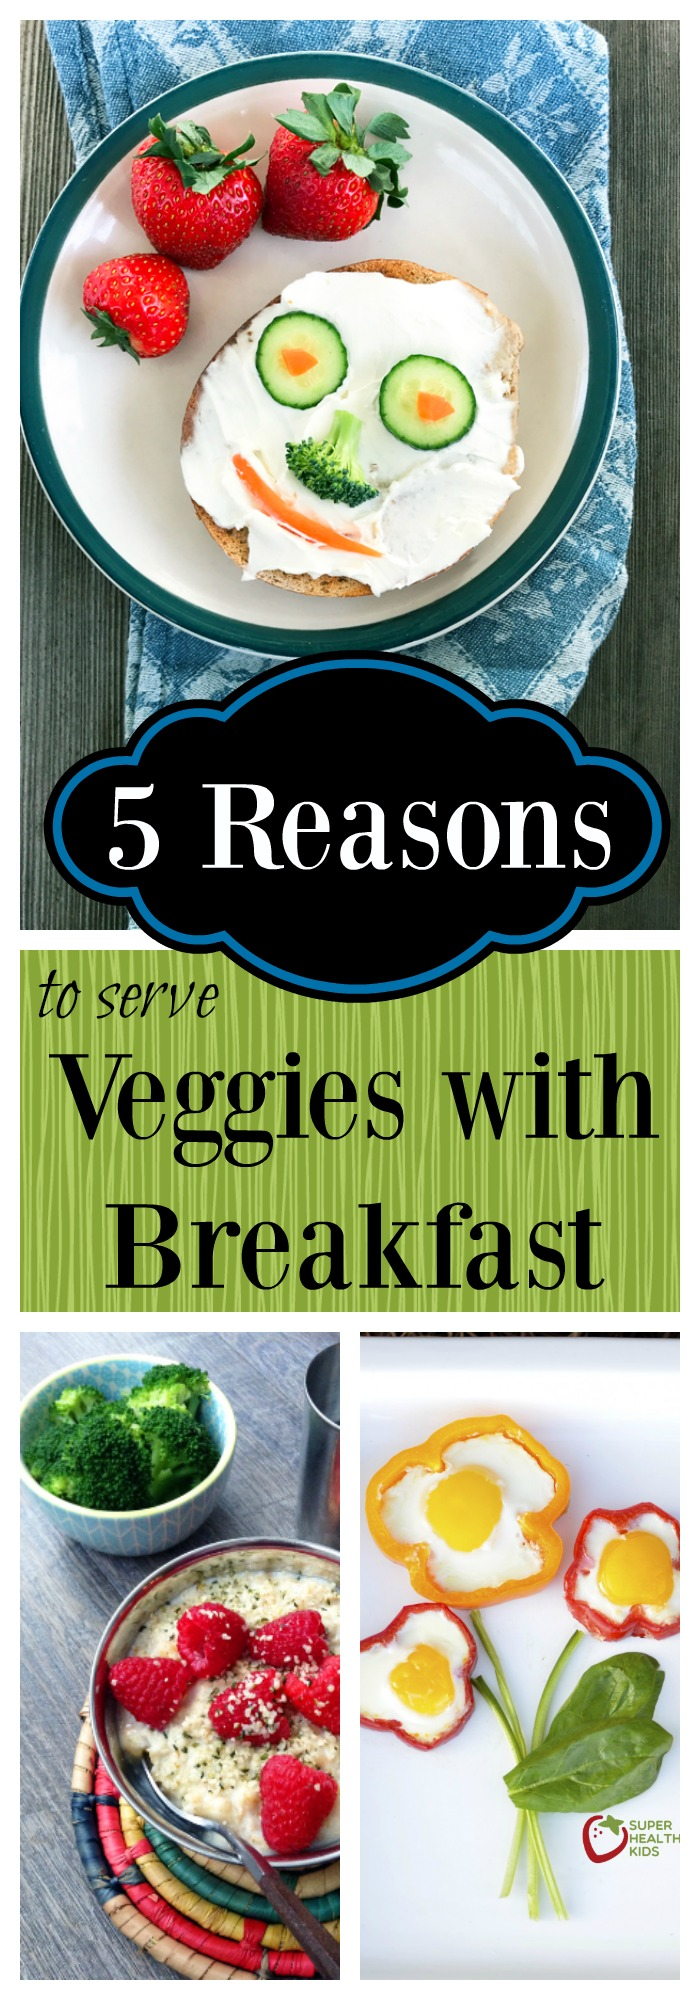 FOOD - 5 Reasons to Serve Veggies with Breakfast | Food and Drink | Super Healthy Kids http://www.superhealthykids.com/5-reasons-to-serve-veggies-with-breakfast/